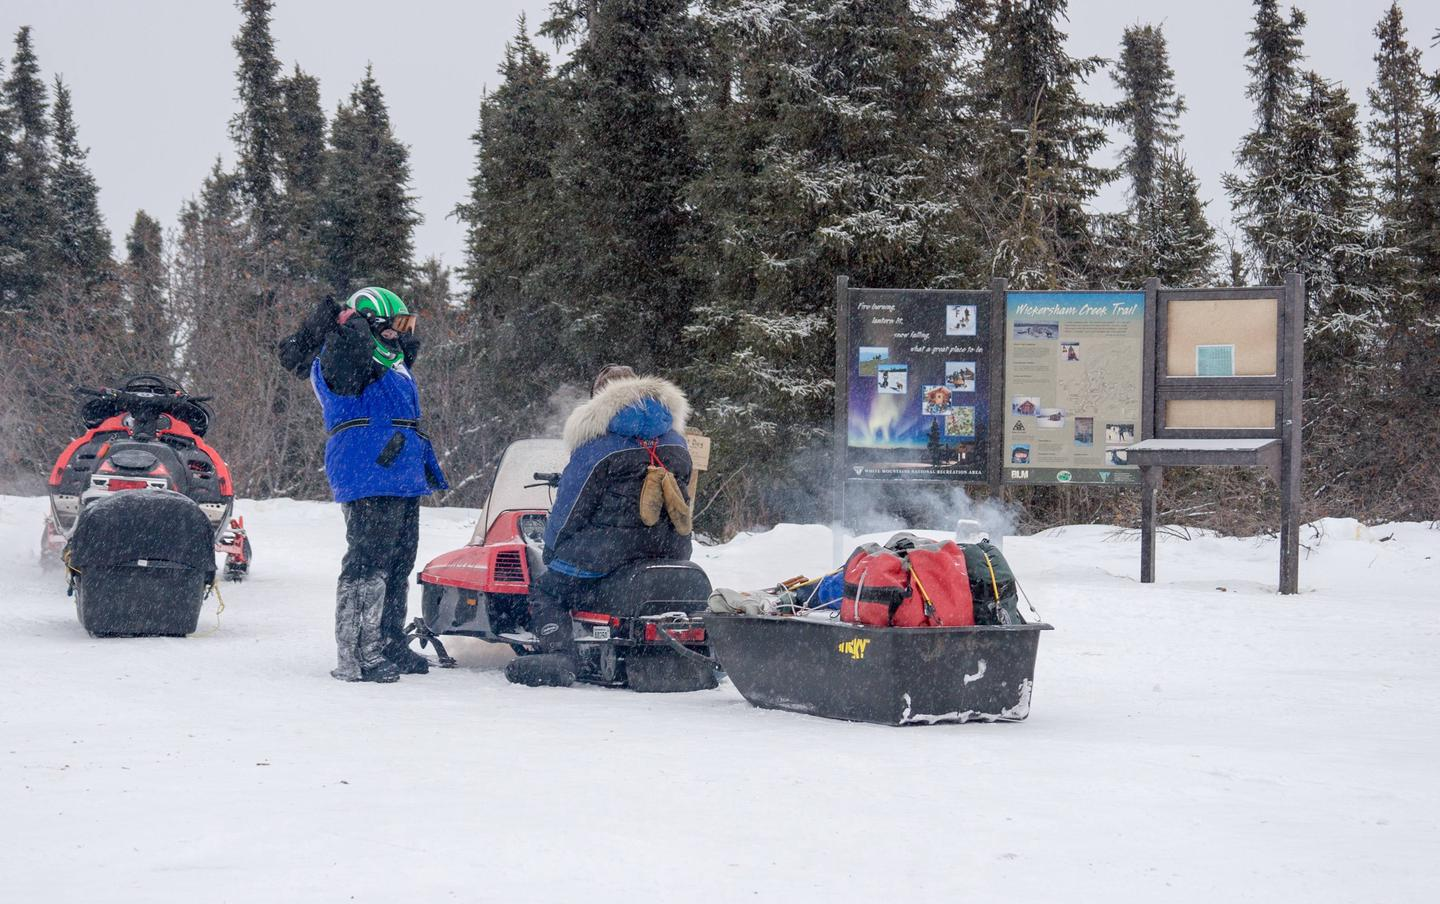 Two snowmobilers wait next to an information kiosk.White Mountains visitors prepare to depart Wickersham Dome Trailhead.